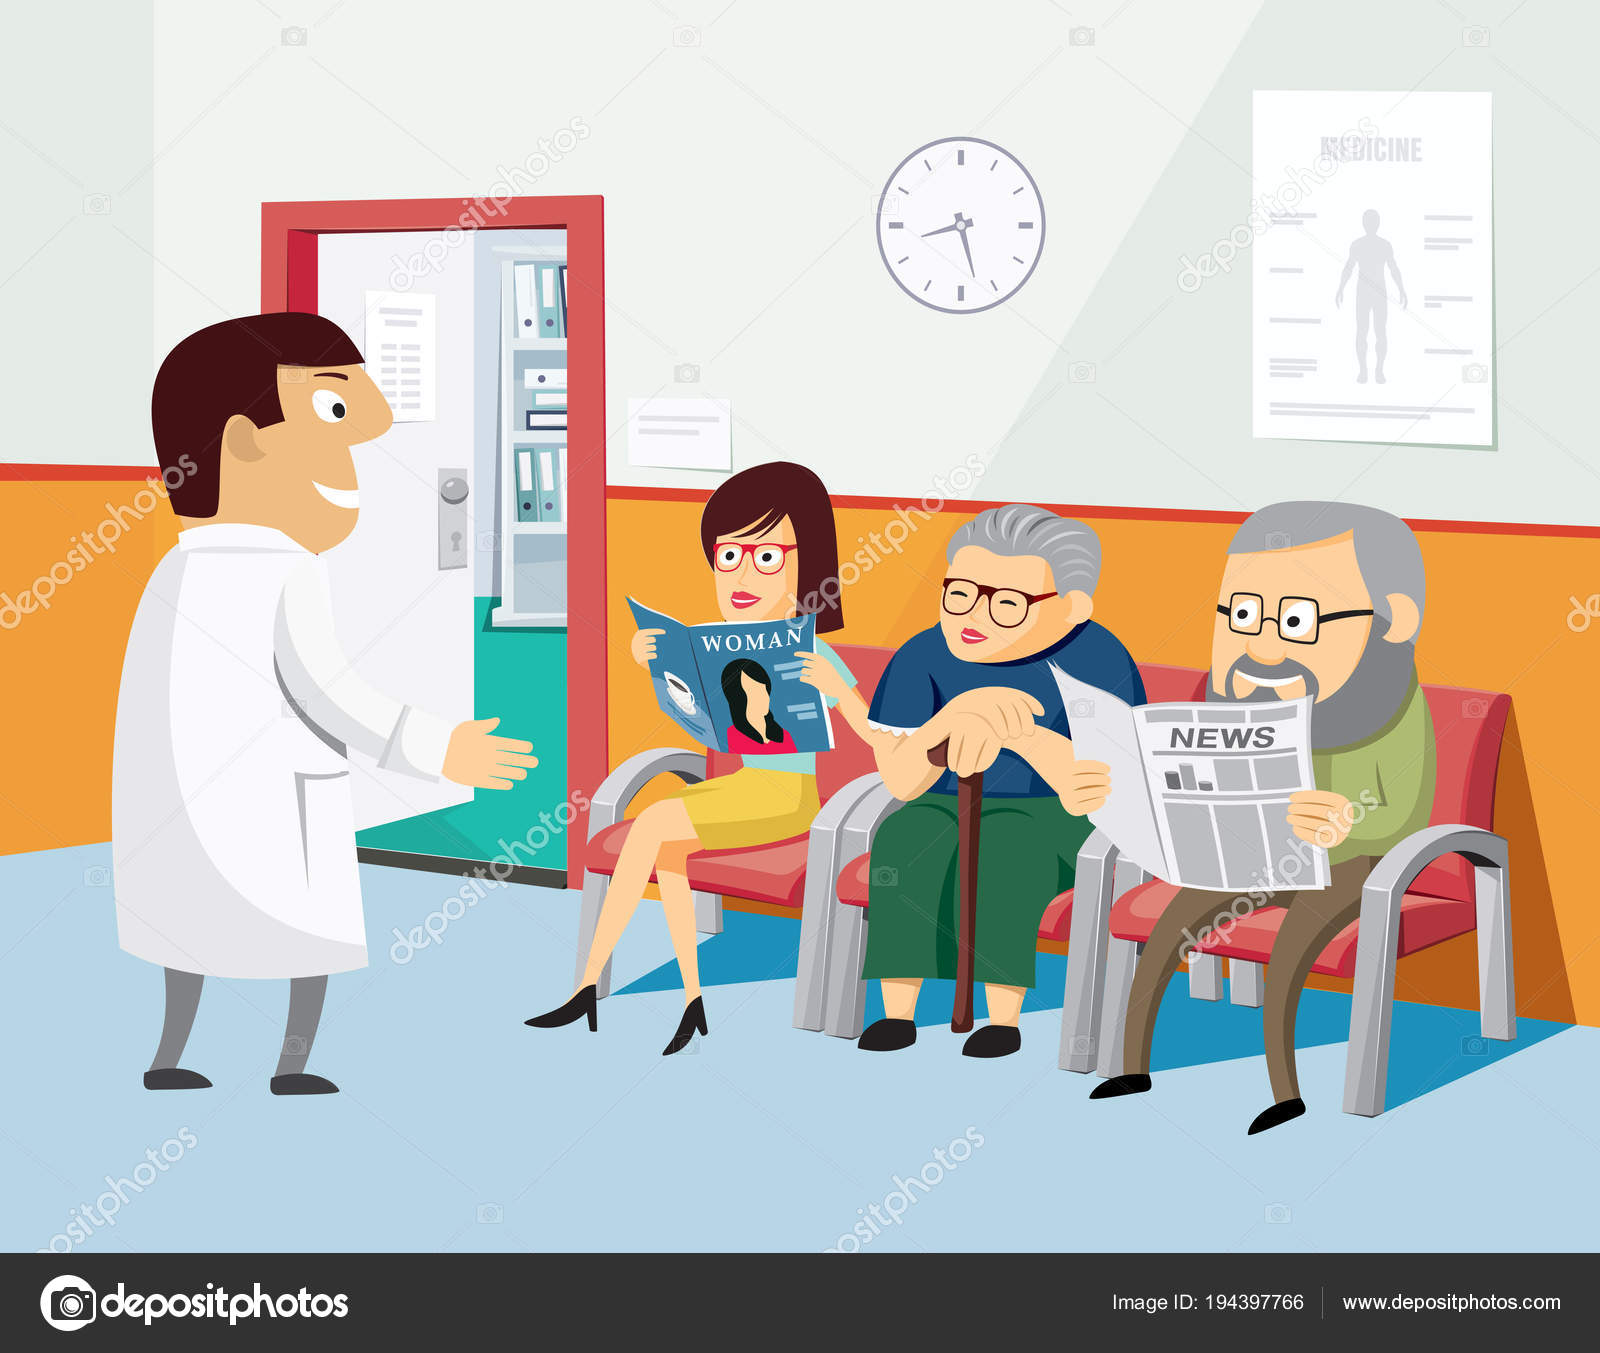 depositphotos_194397766-stock-illustration-the-best-medical-health-care.jpg